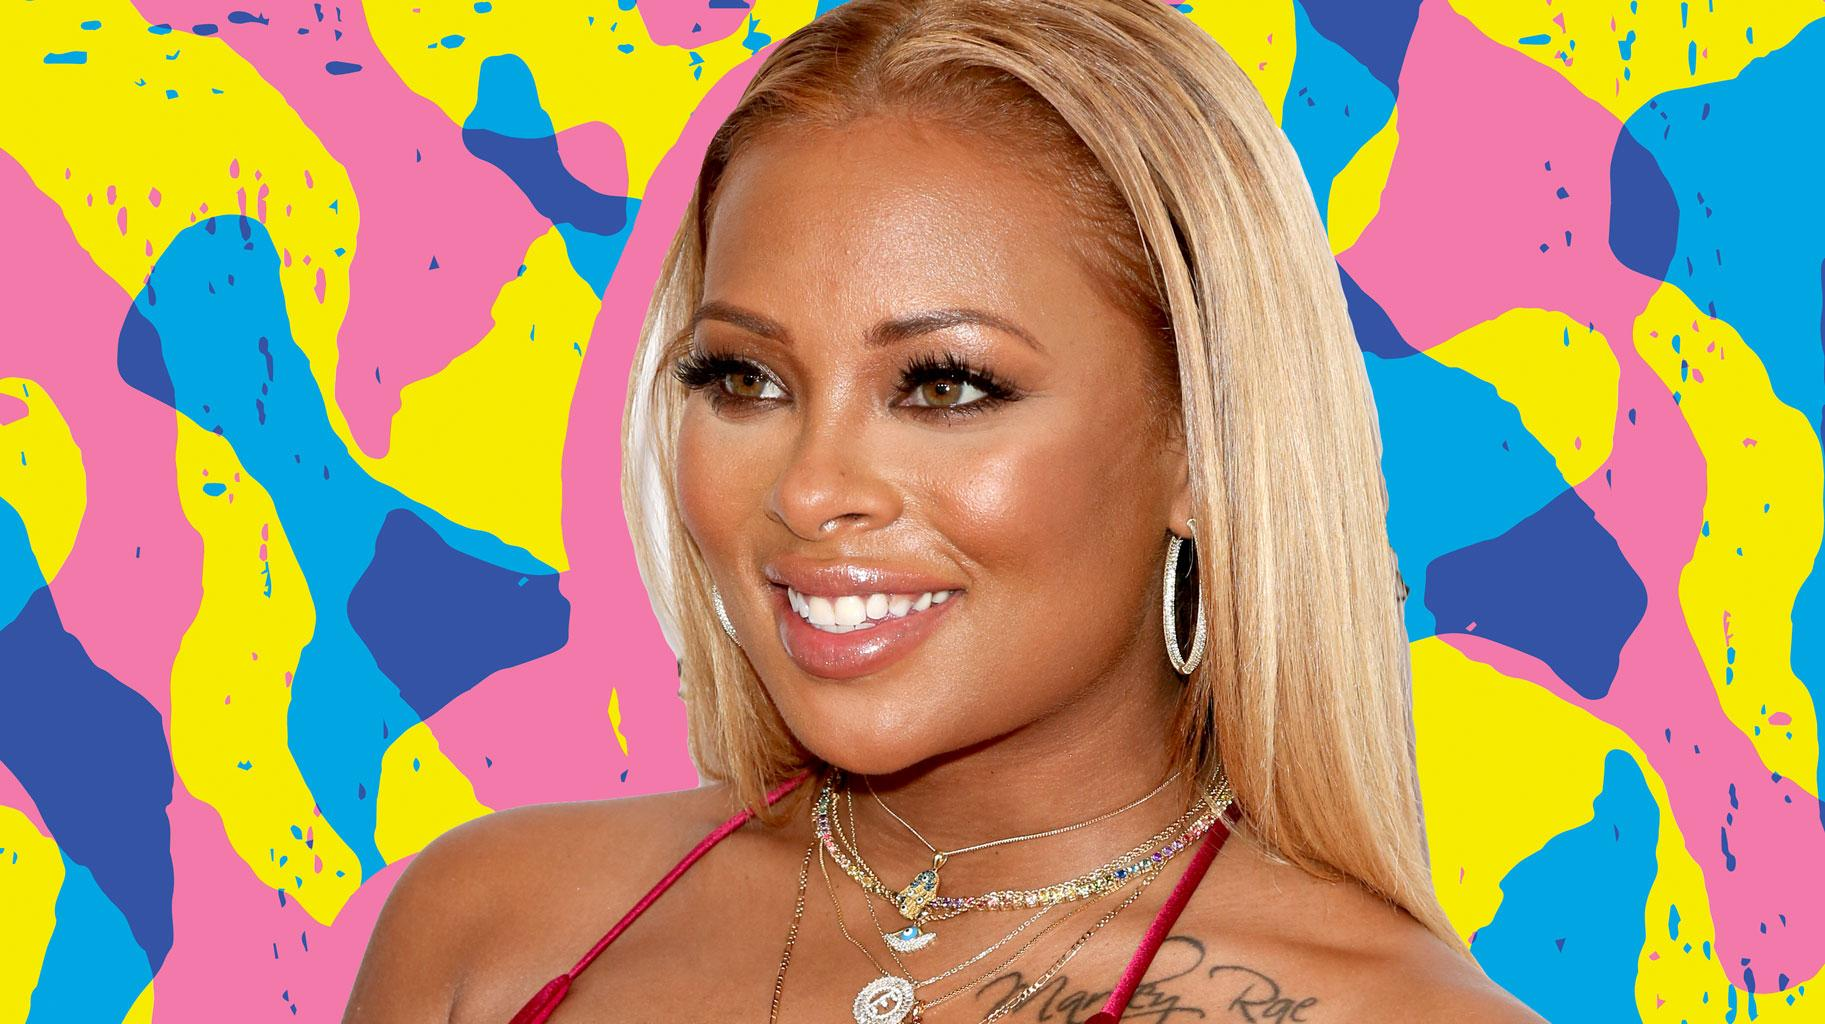 Eva Marcille Is Promoting A Clothing Line With The Mission To Uplift, Inspire And Encourage Others